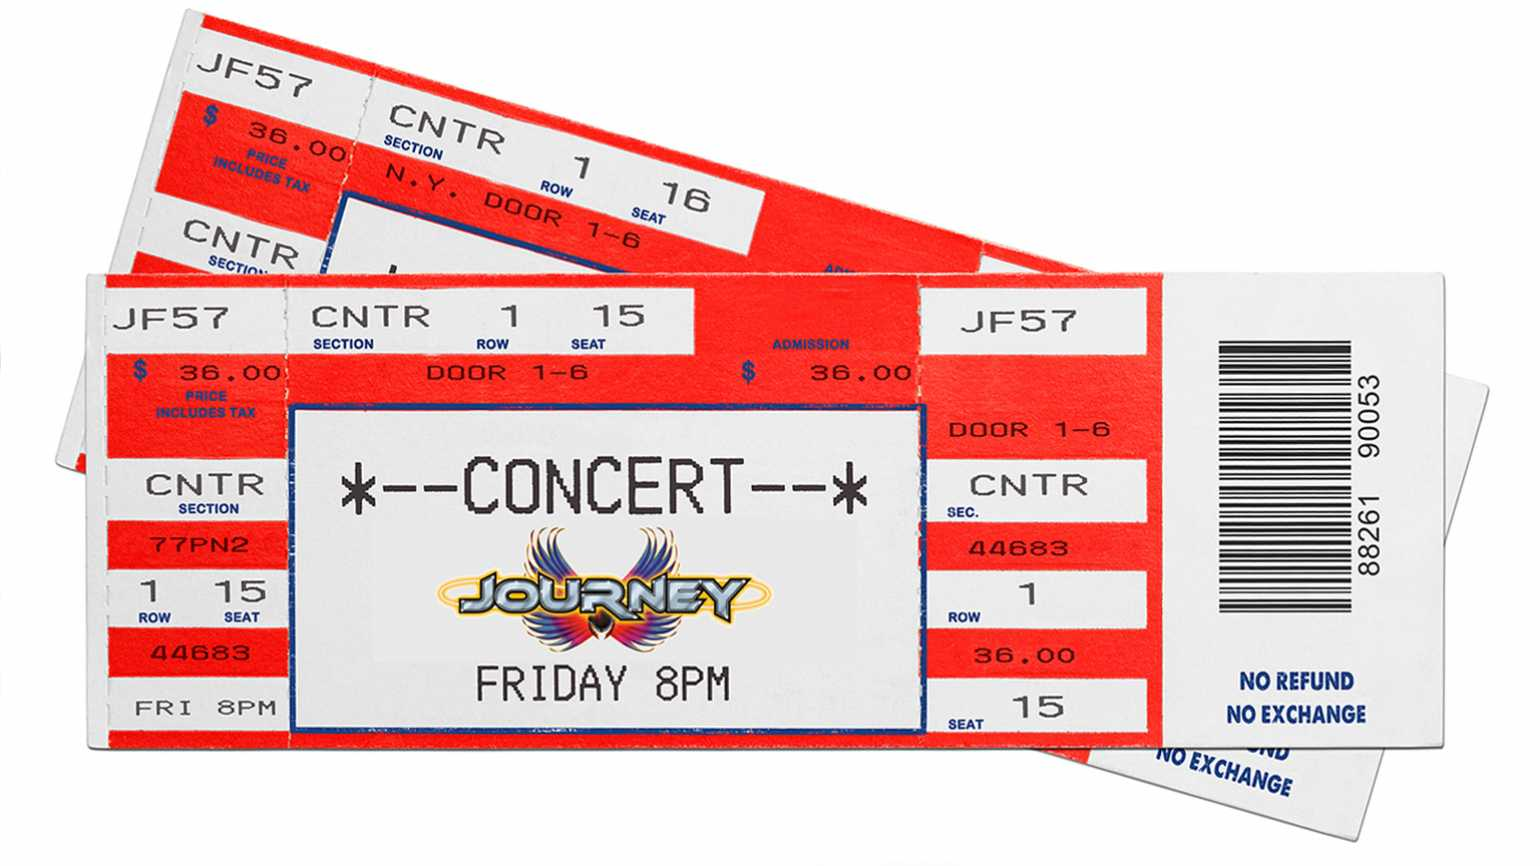 A pair of tickets to a Journey concert